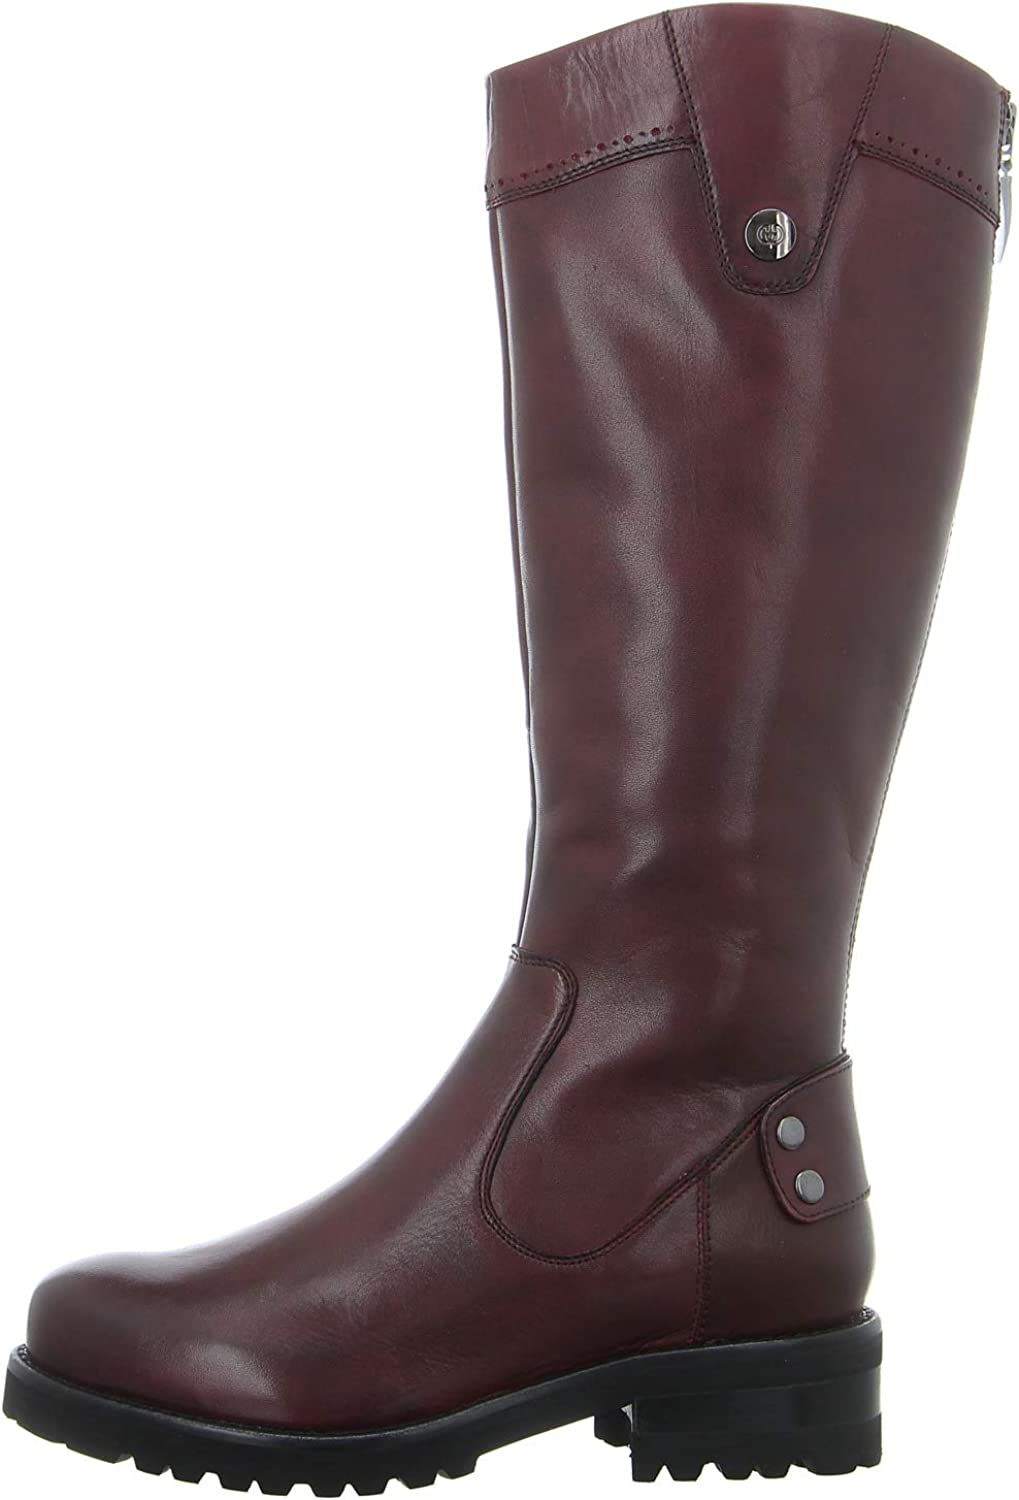 Gerry Weber Women Boots Jale 18 red, (Bordo) G80128MI24 410